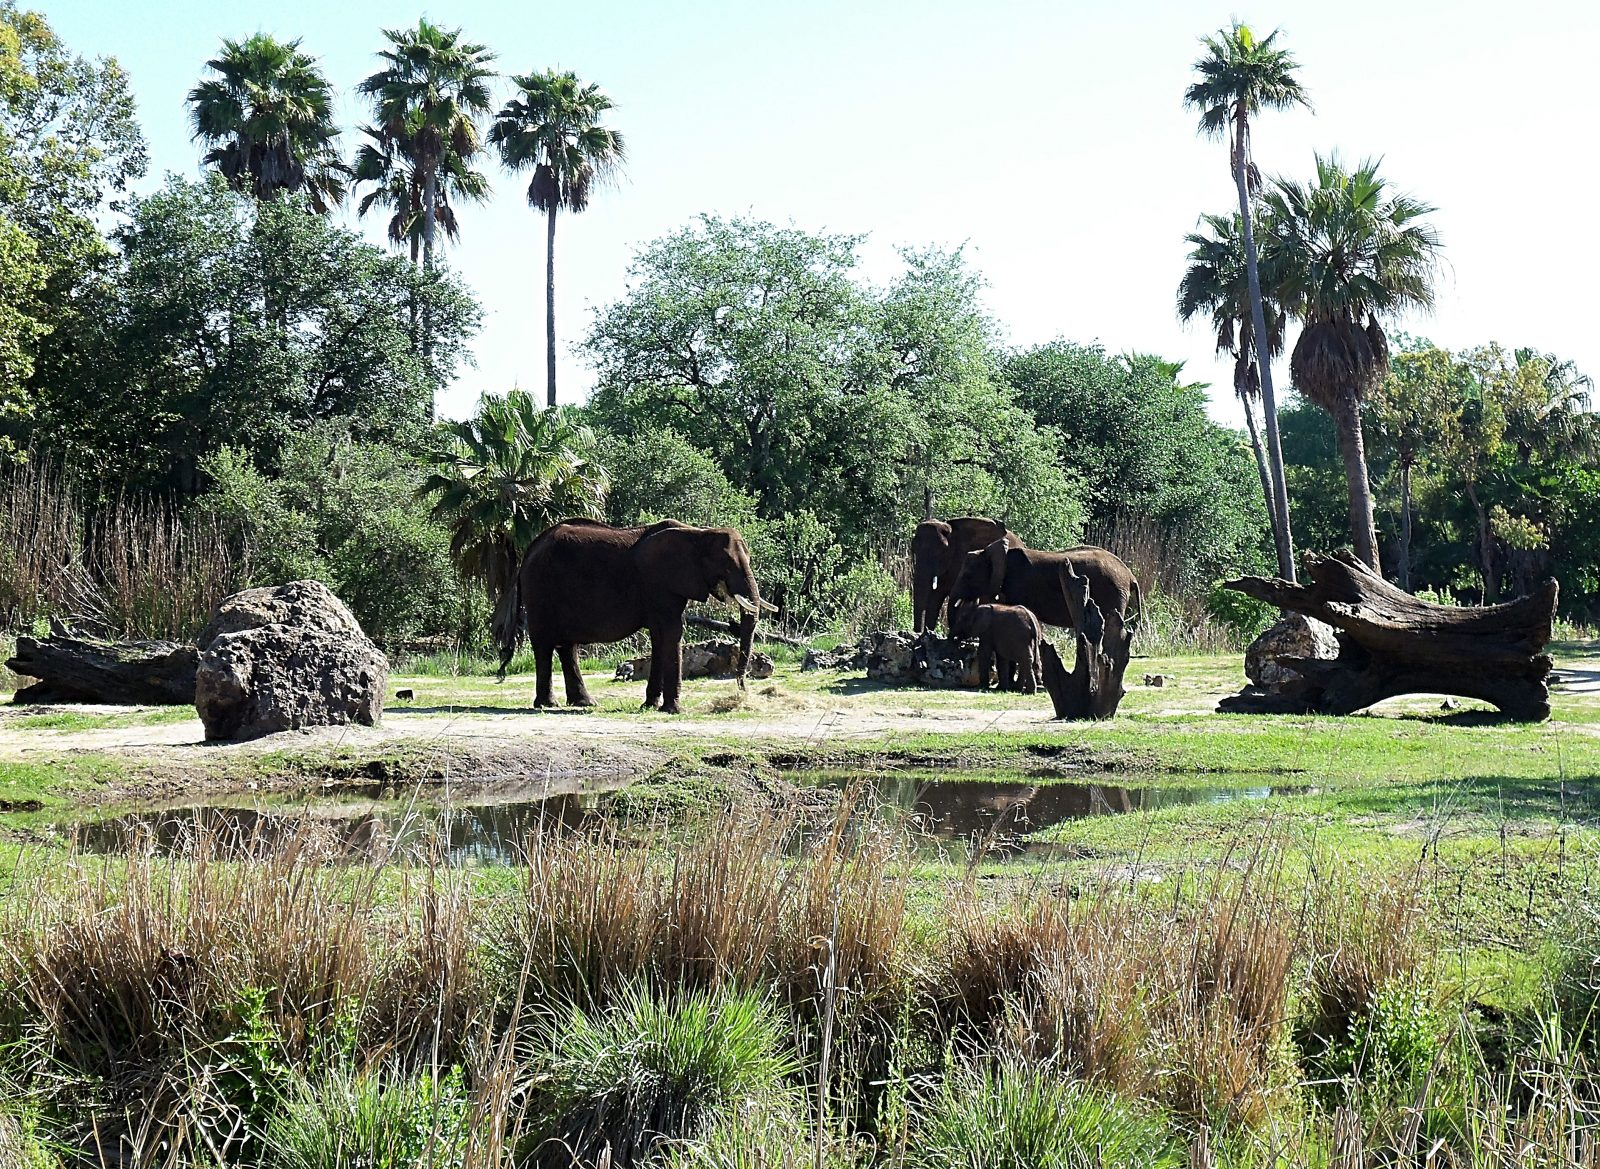 elephants at kilimanjaro safari